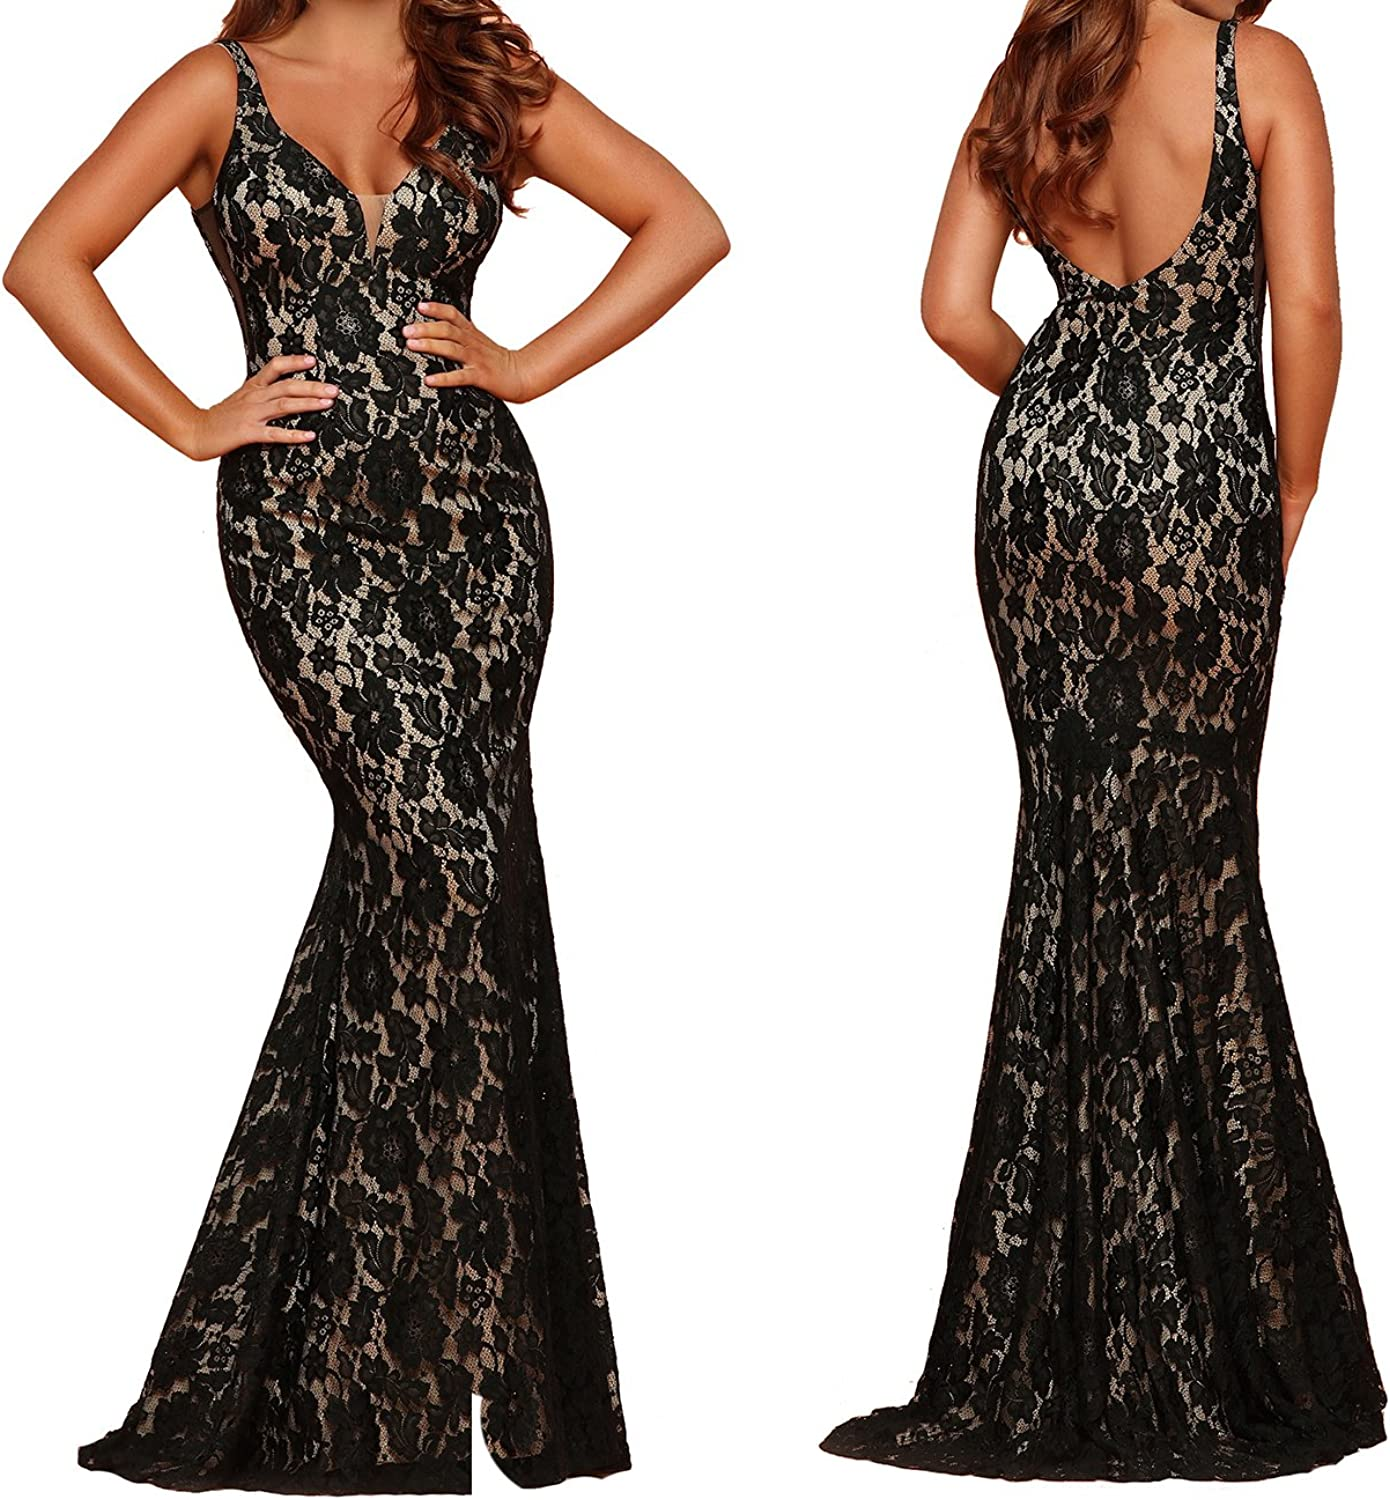 Caterinasara Mermaid Formal Prom Pageant Gown Juniors Lace Evening Homecoming Dress Black Nude